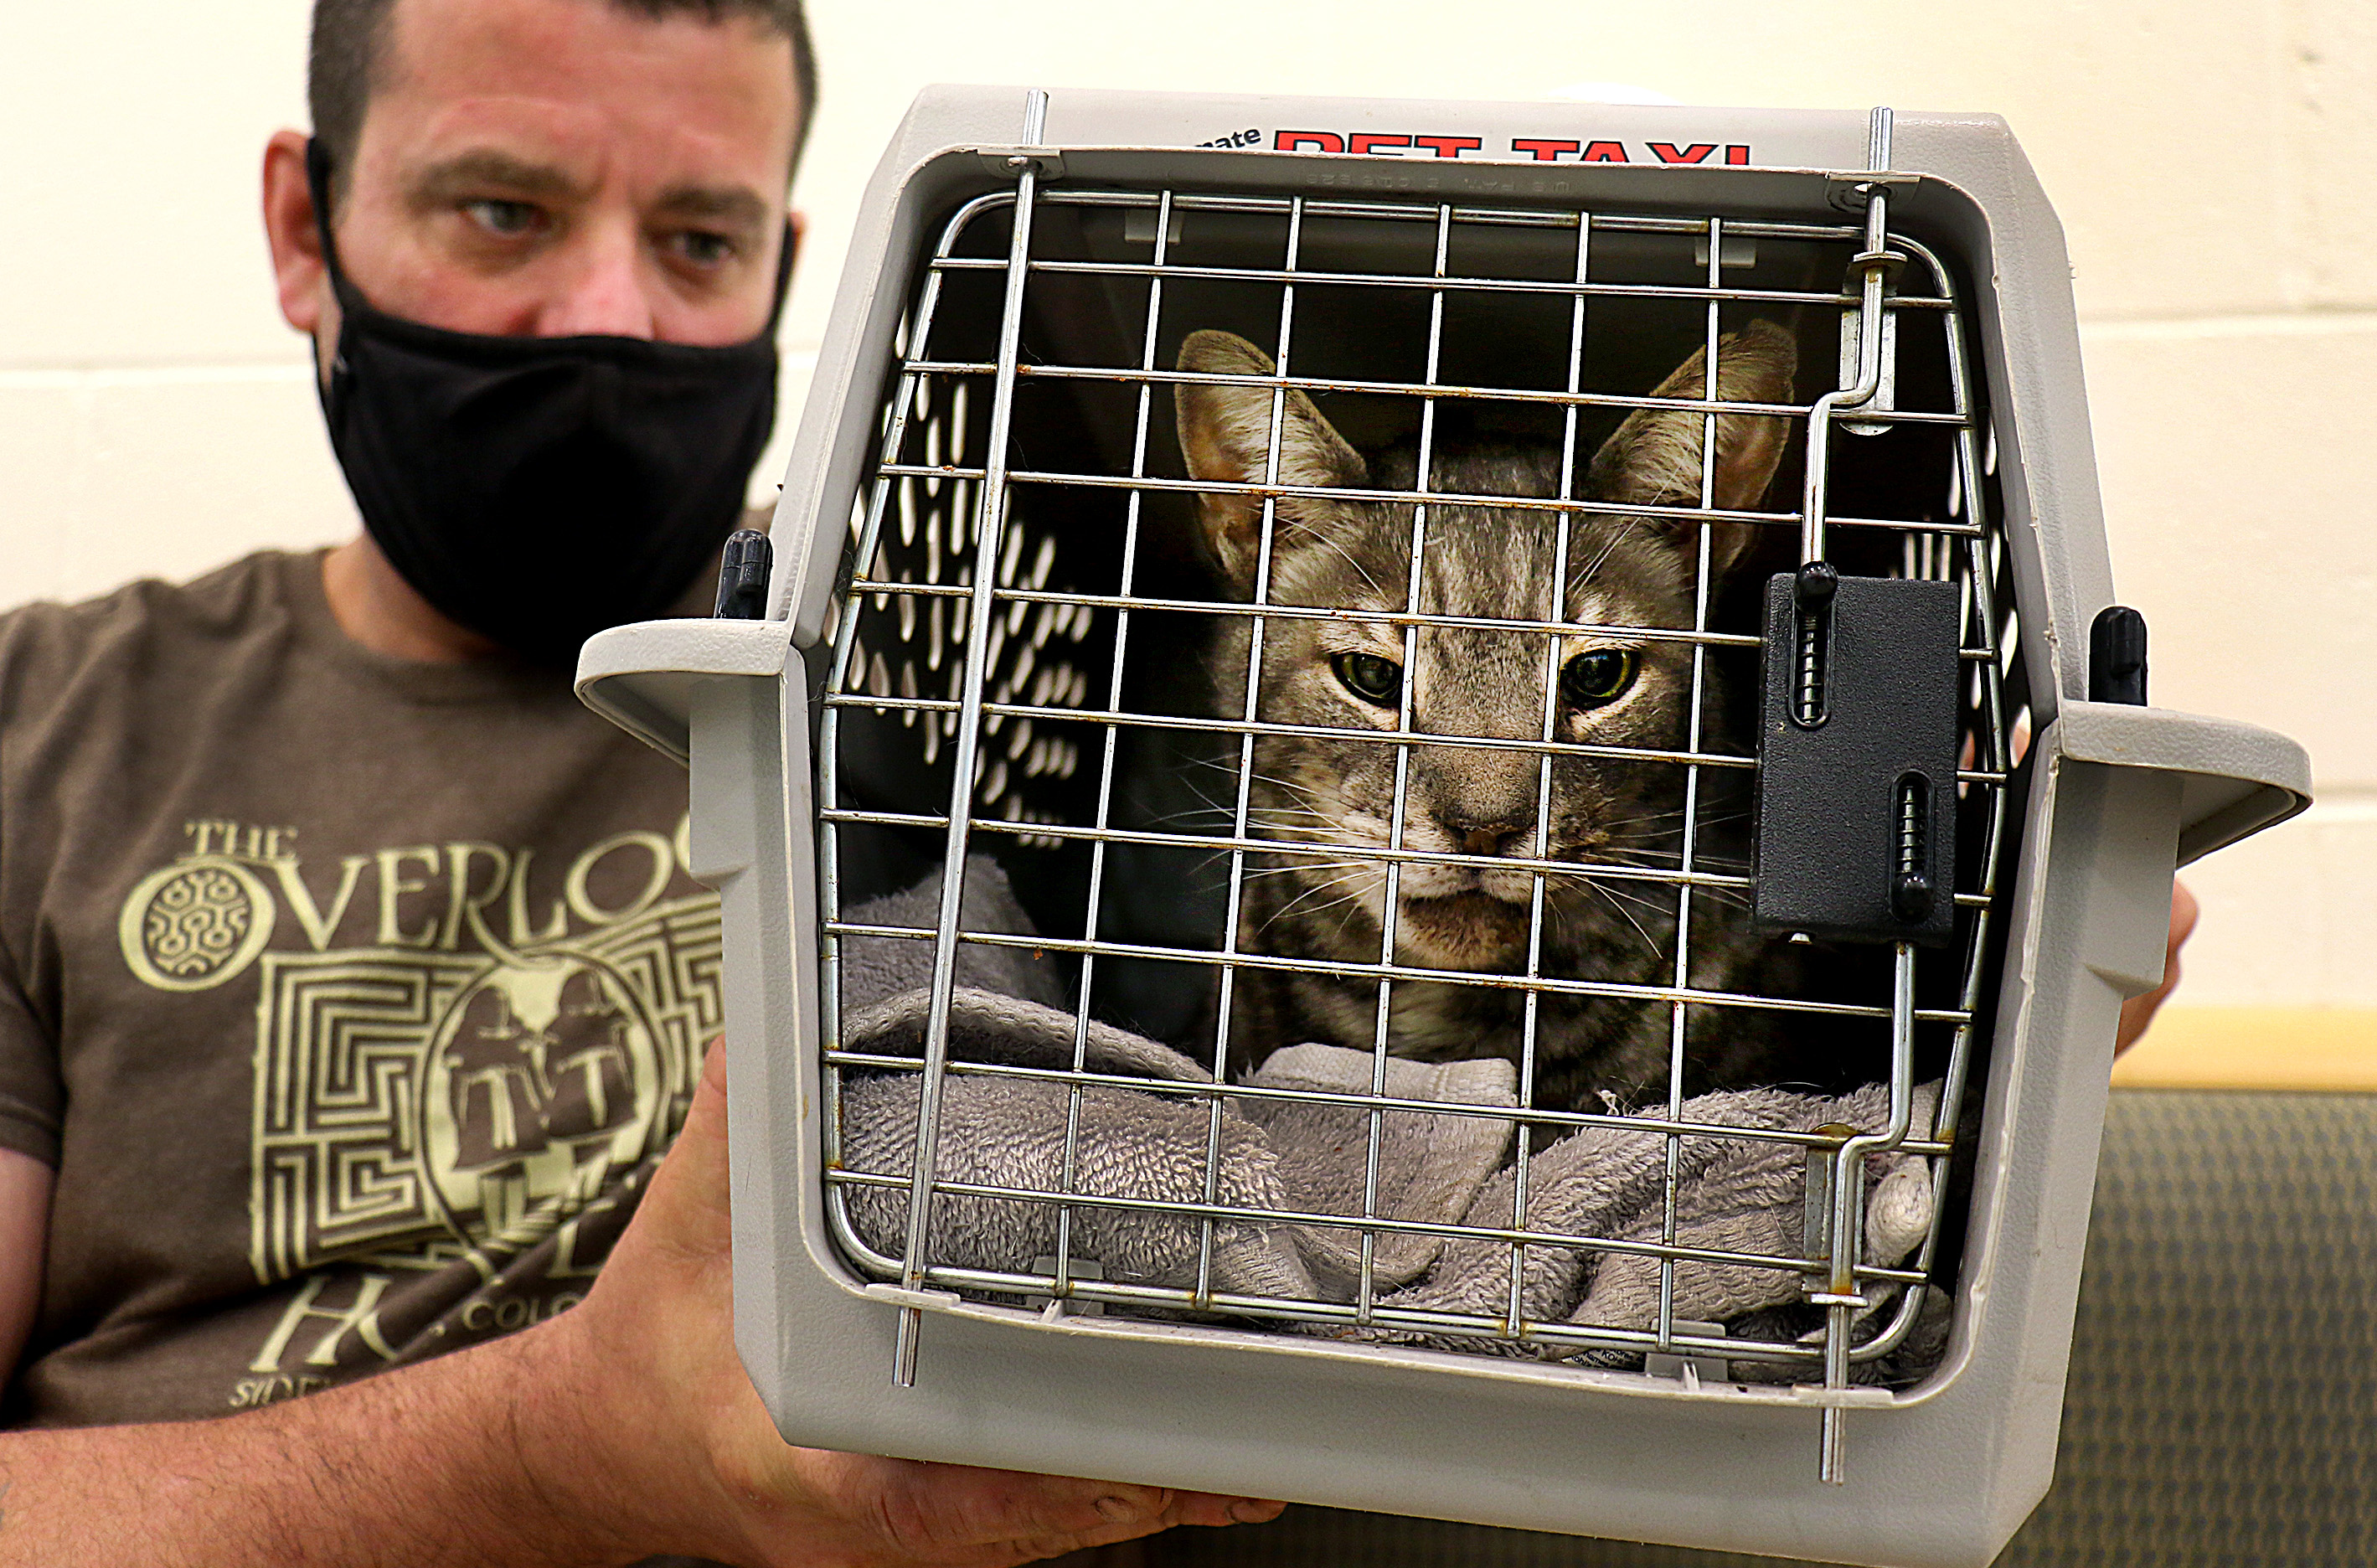 Carl Rossi waited two hours in Angell's waiting area to have his cat, Max, checked out after Max fled for five days and came back with a possibly broken jaw.